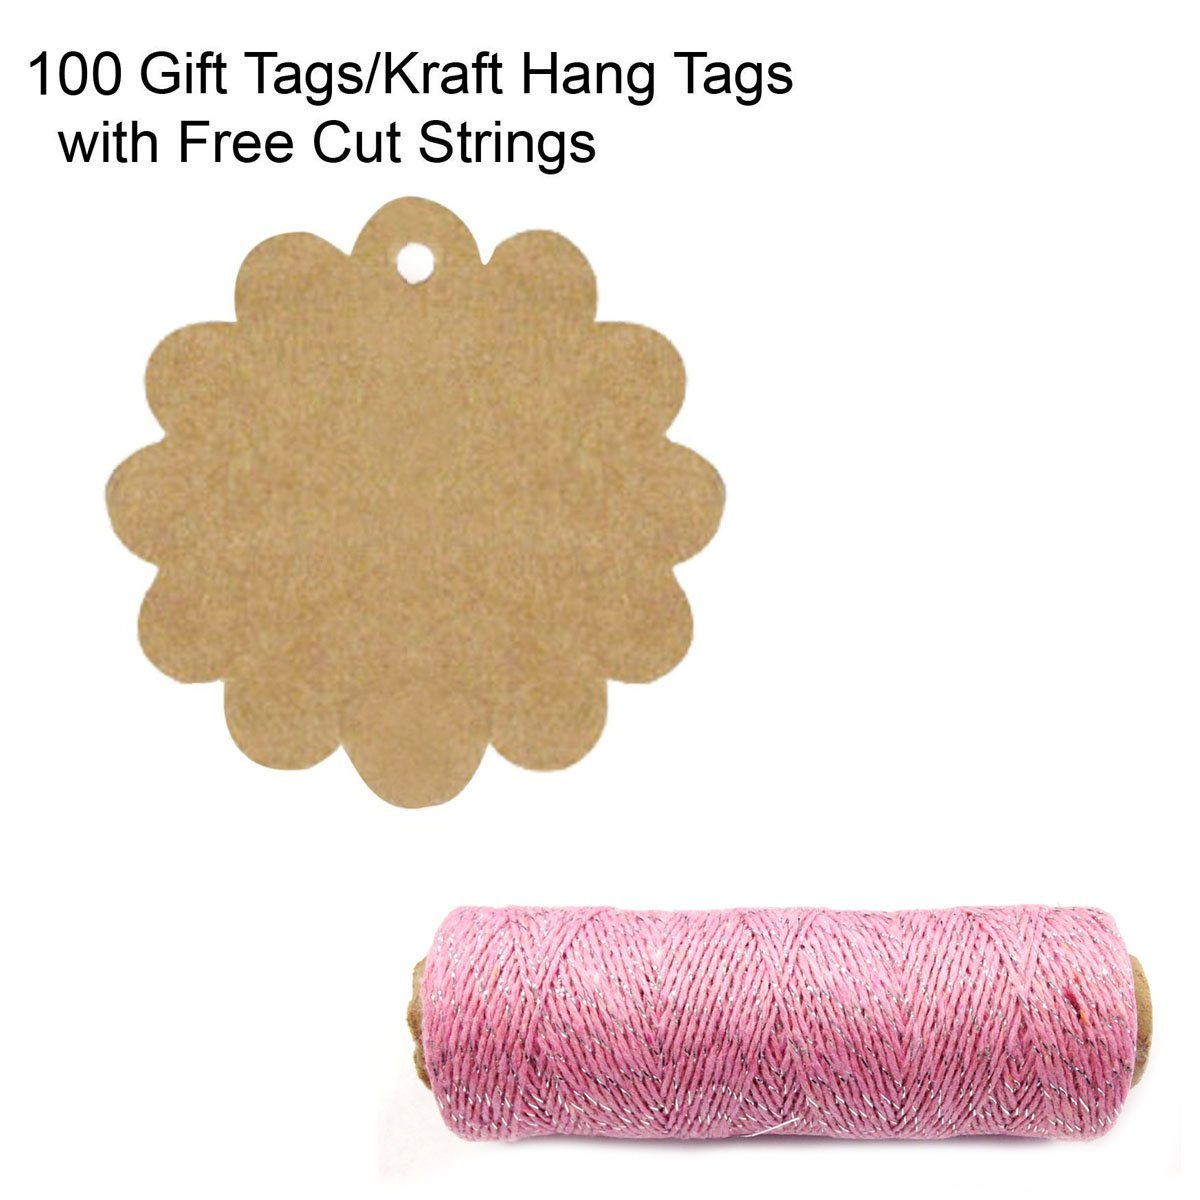 Wrapables 100 Flower Gift Tags/Kraft Hang Tags with Free Cut Strings + Cotton Baker's Twine 4ply 110 Yard, Pink/Metallic Silver